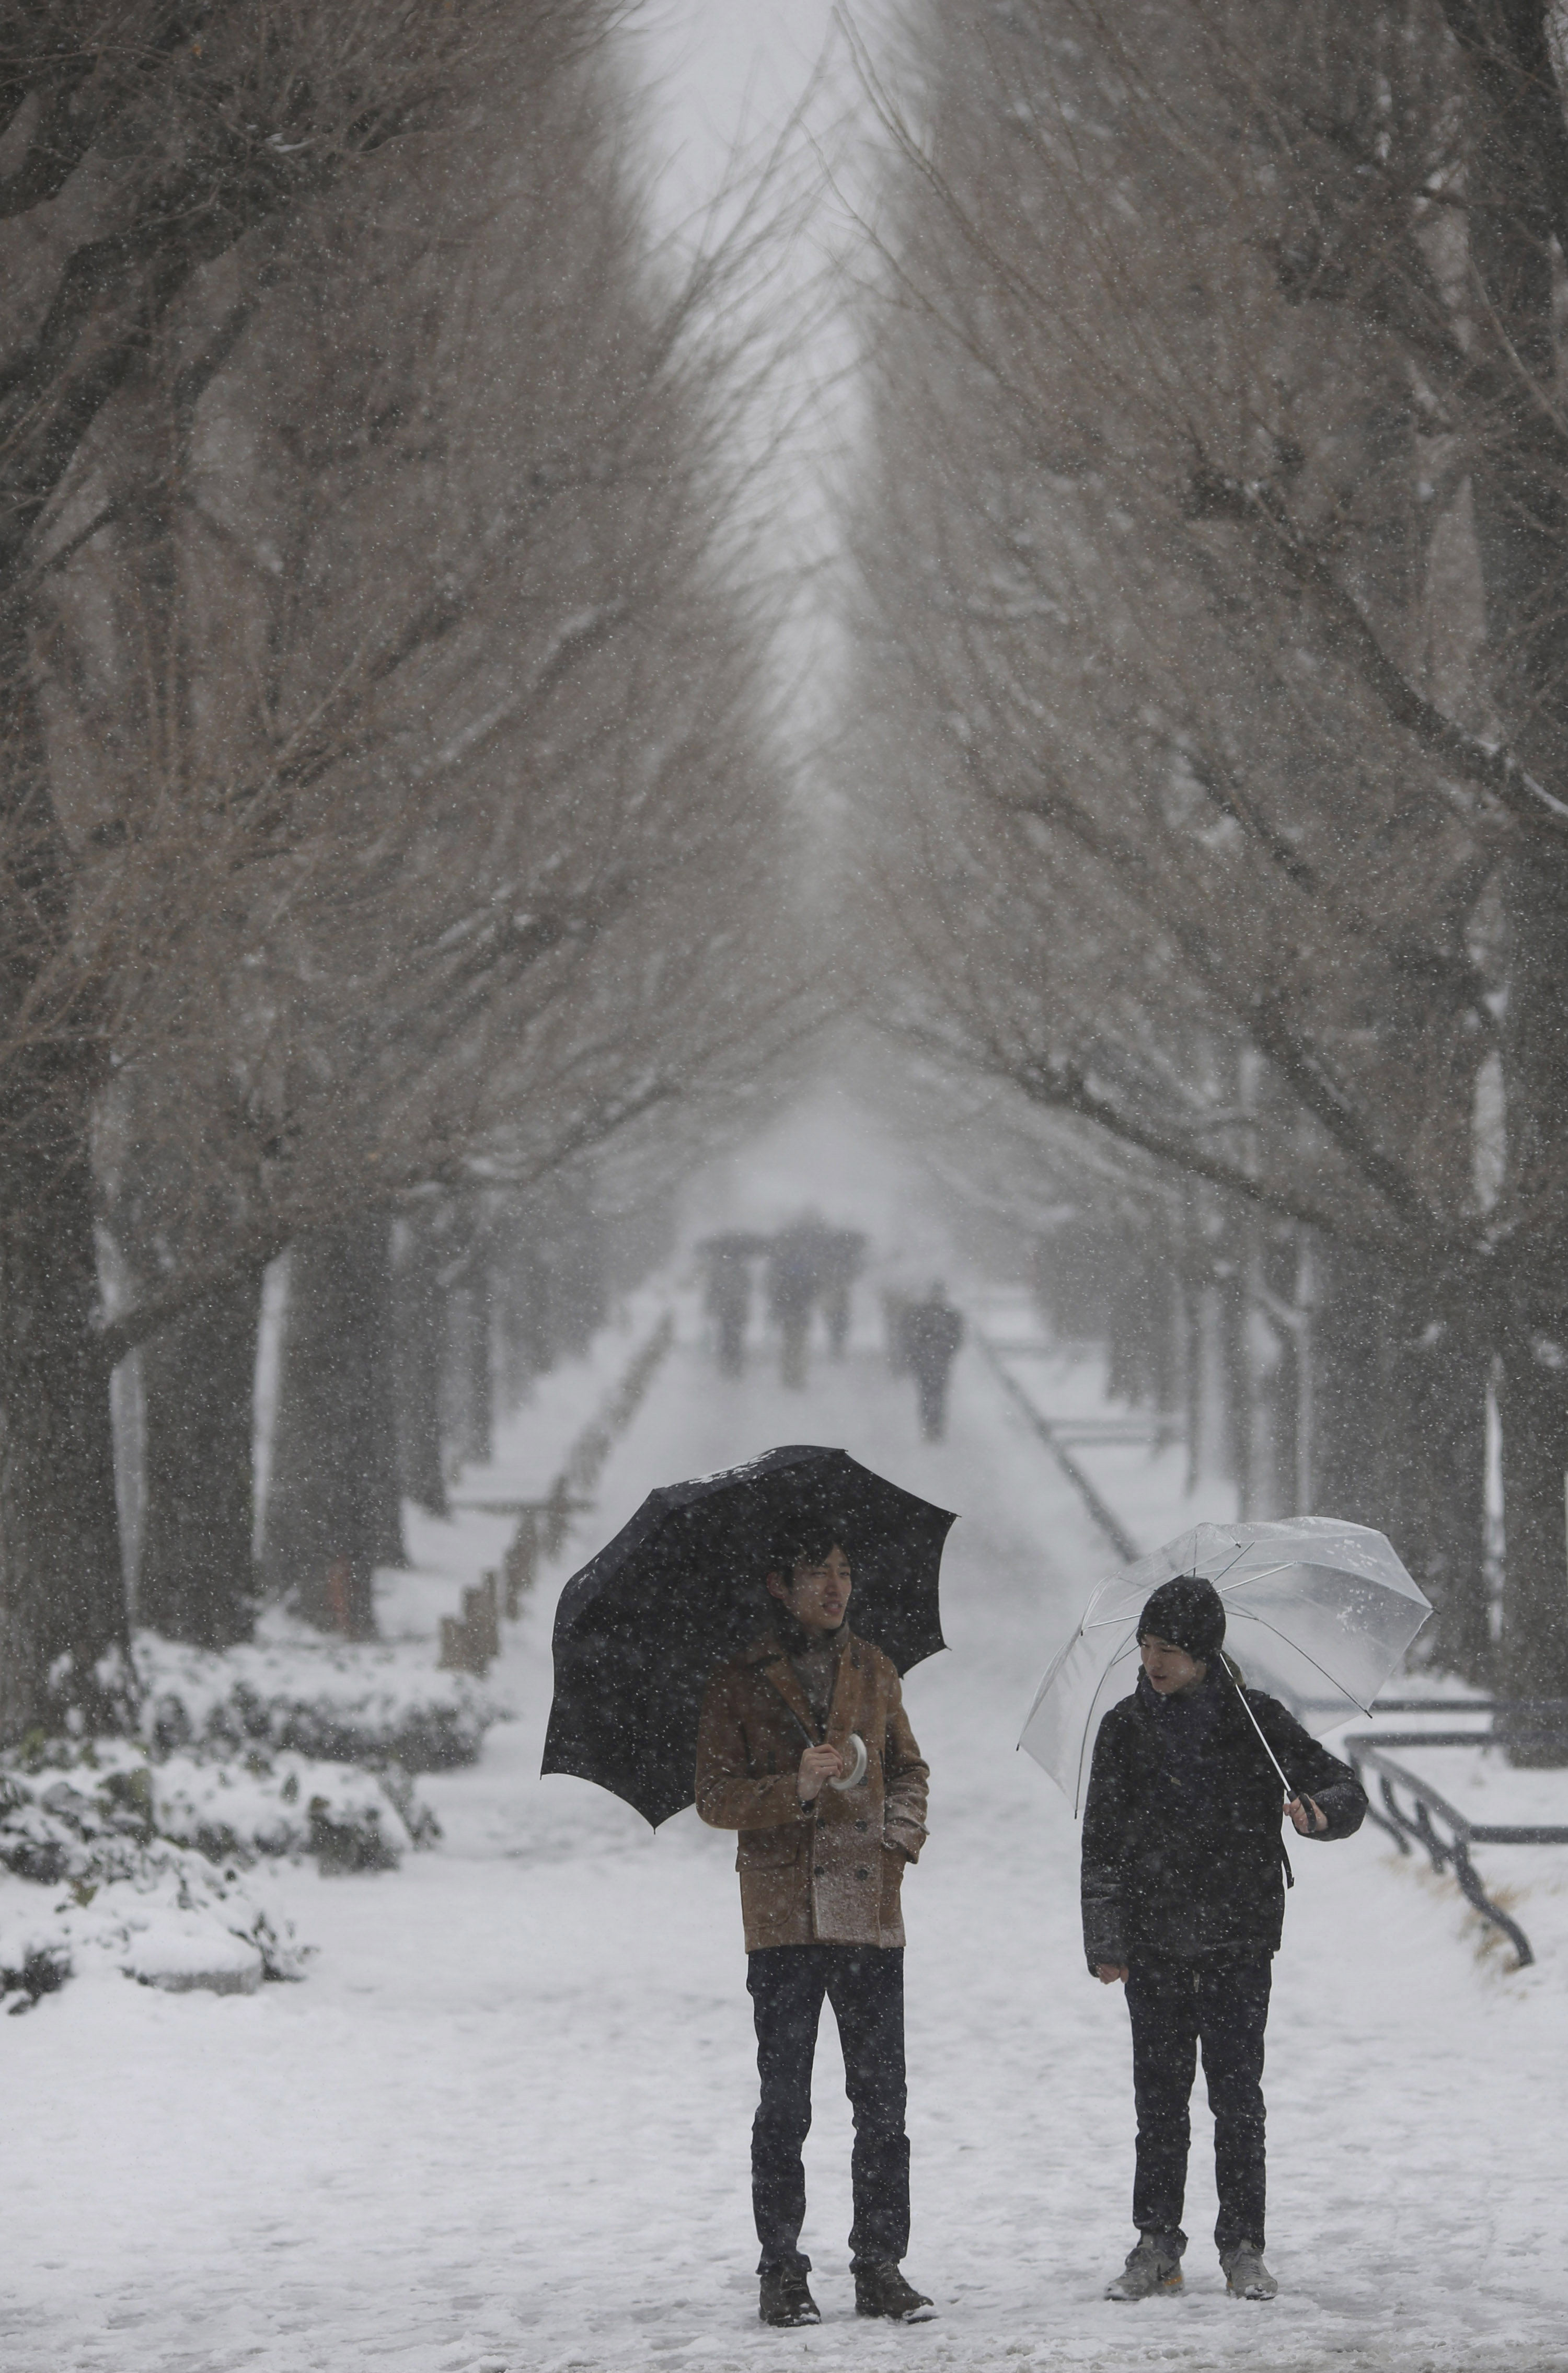 Five Dead, More Than 600 Injured As Heavy Snow Hits Japan